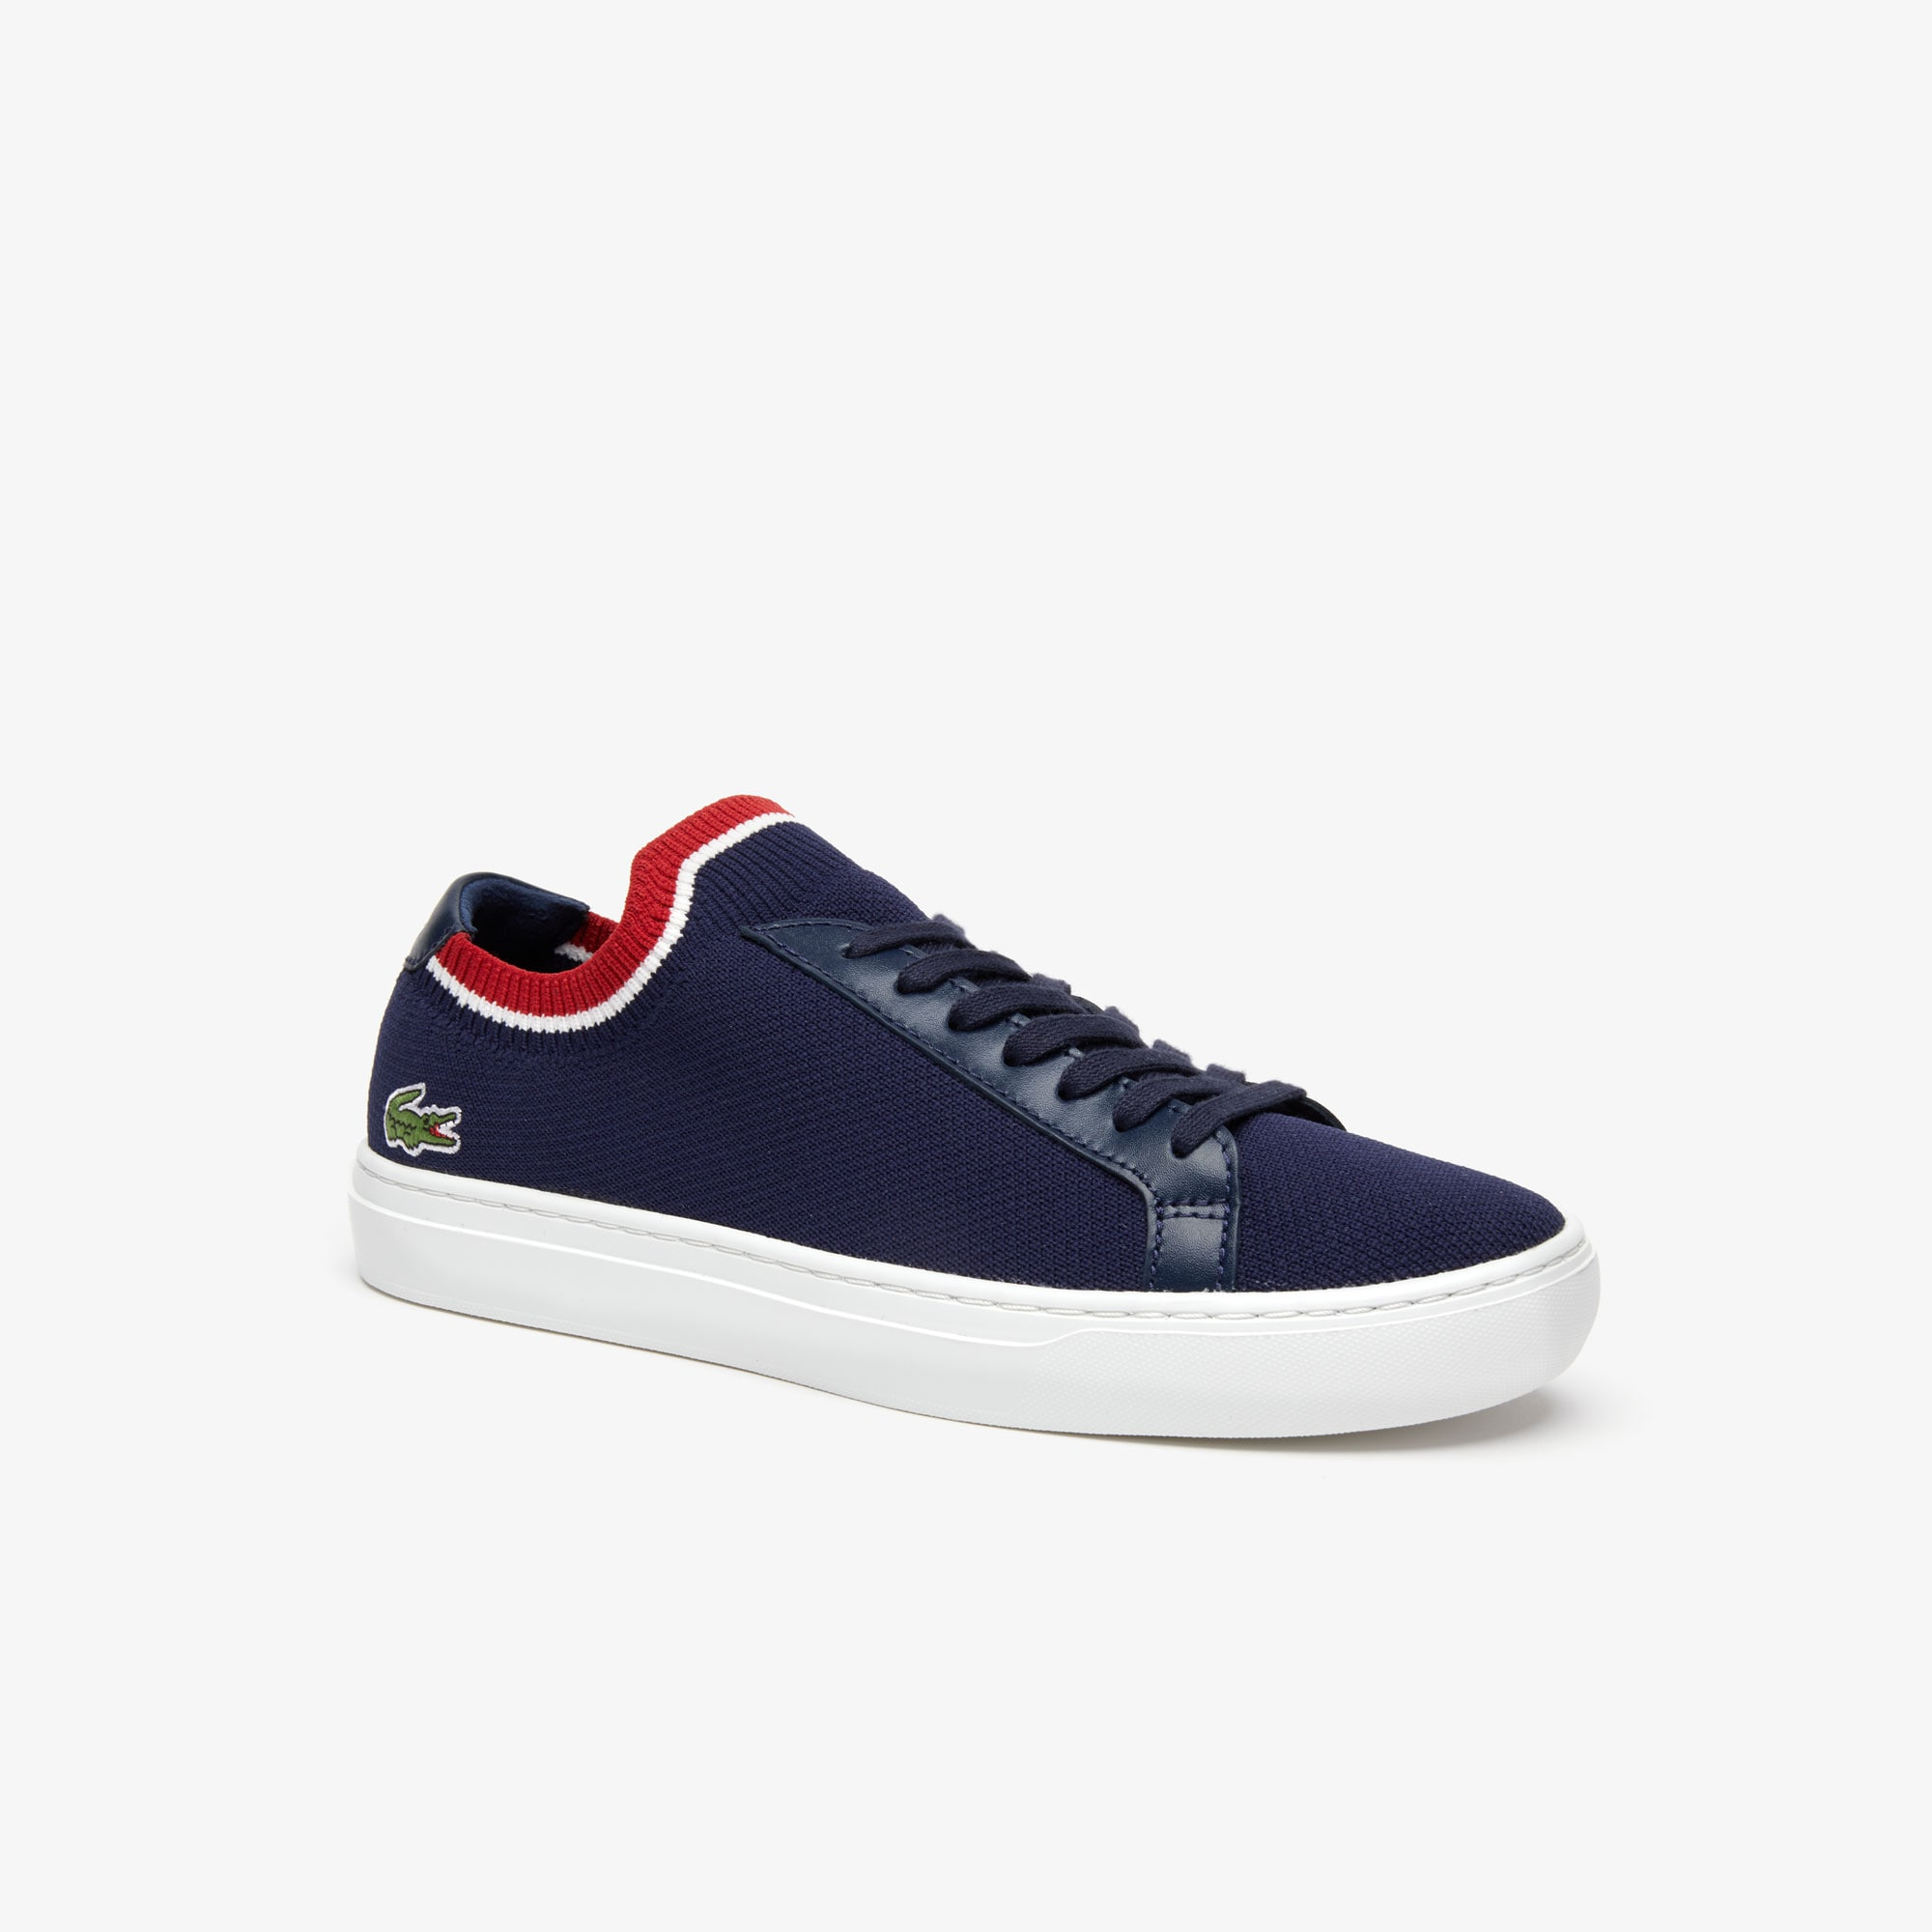 1661e8604 Lacoste shoes for men  Sneakers